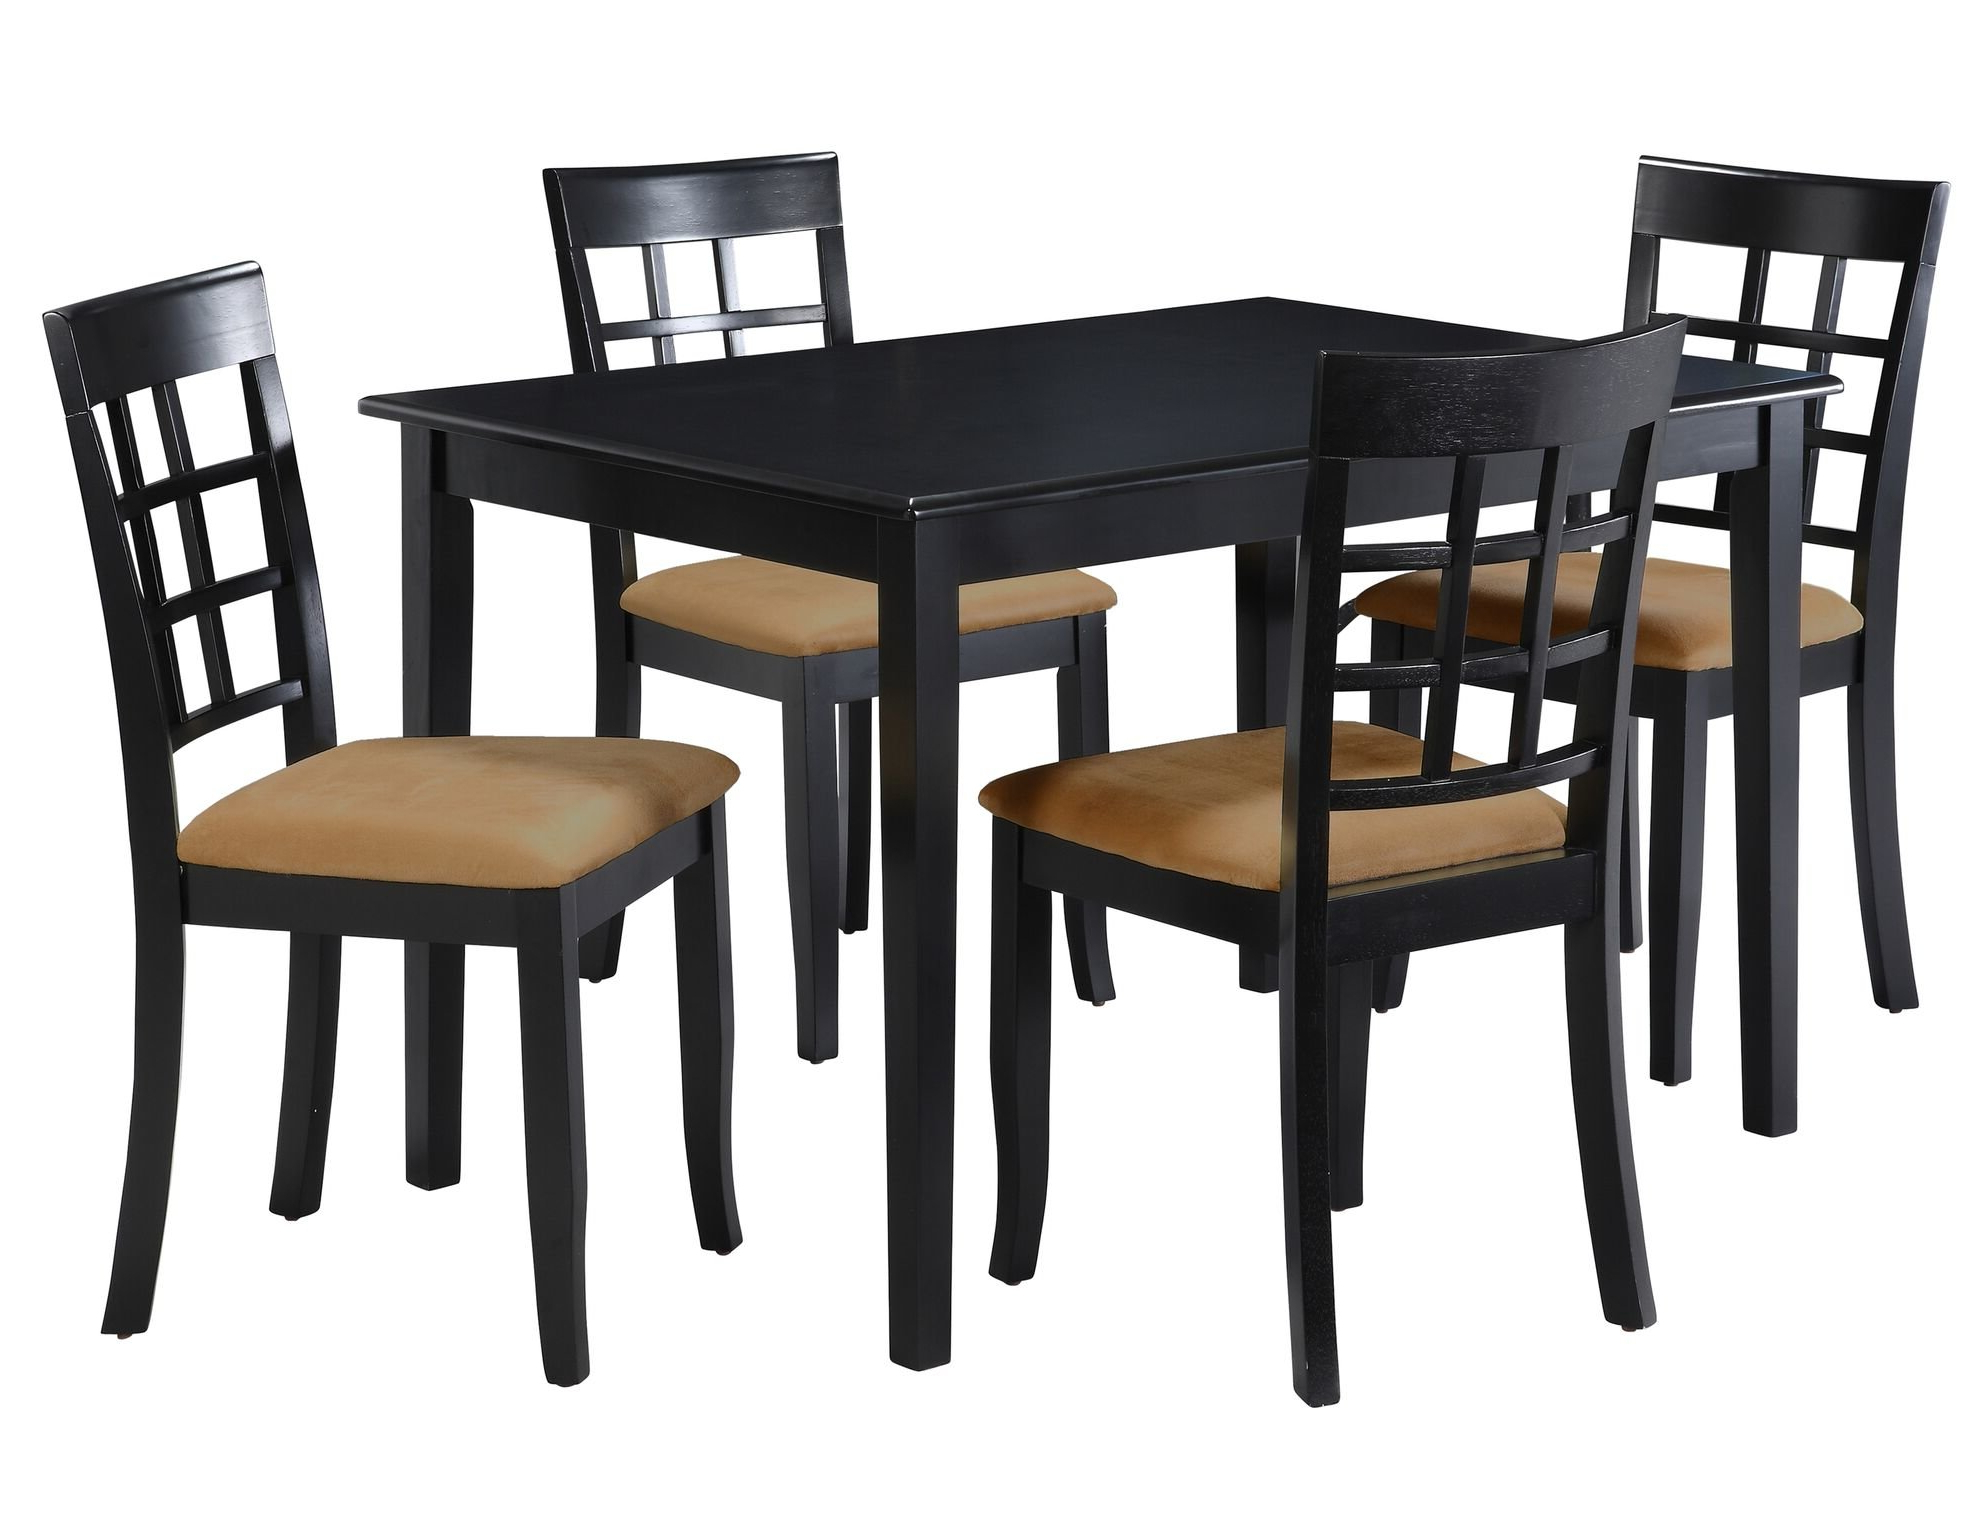 Preferred Pattonsburg 5 Piece Dining Sets Within Oneill 5 Piece Windown Back Dining Set & Reviews (View 18 of 25)